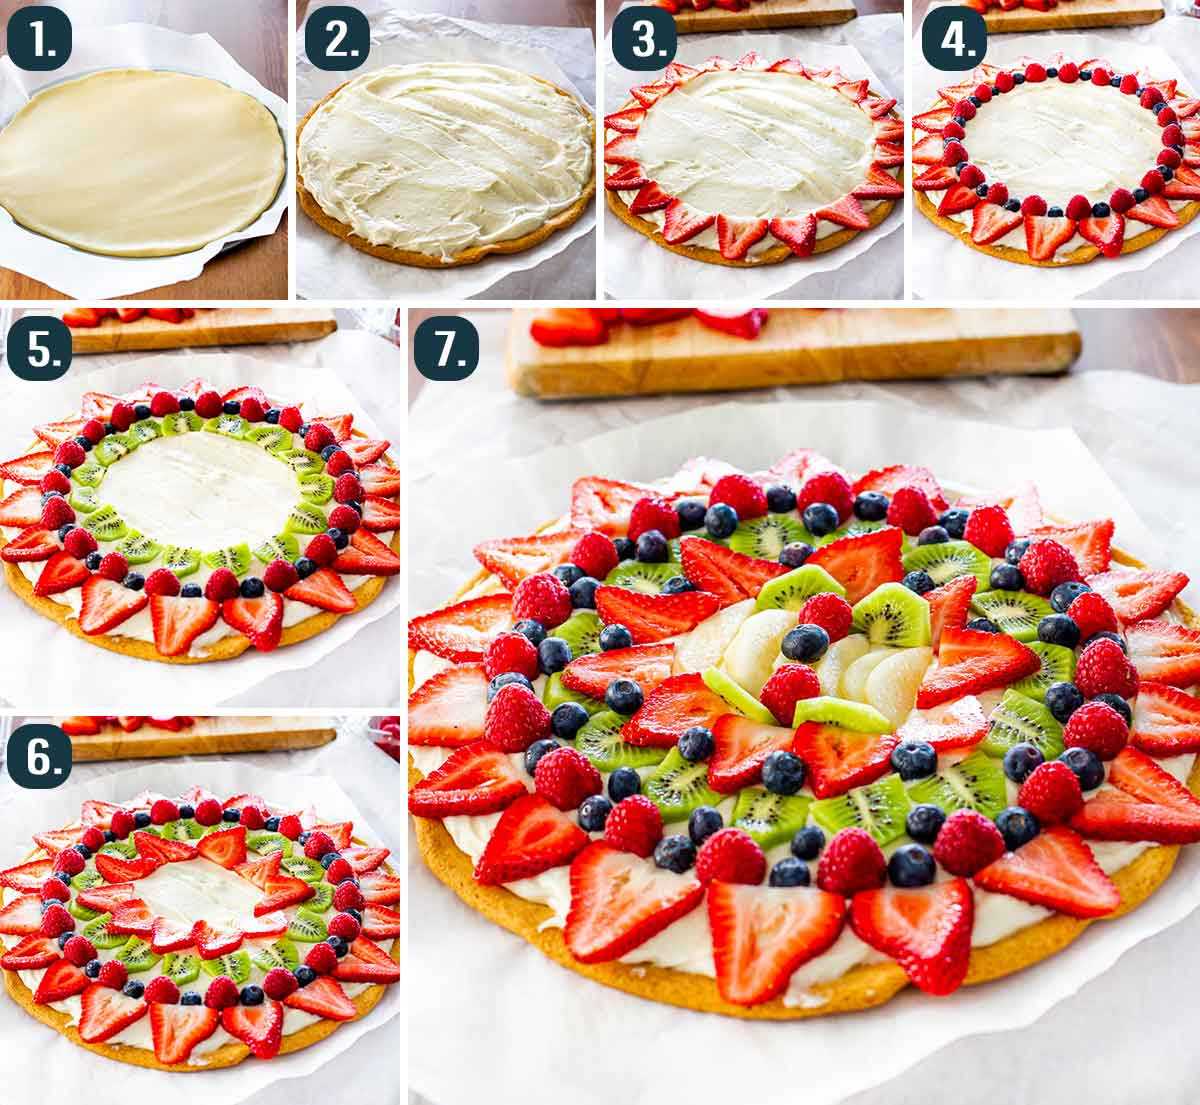 process shots showing how to make fruit pizza